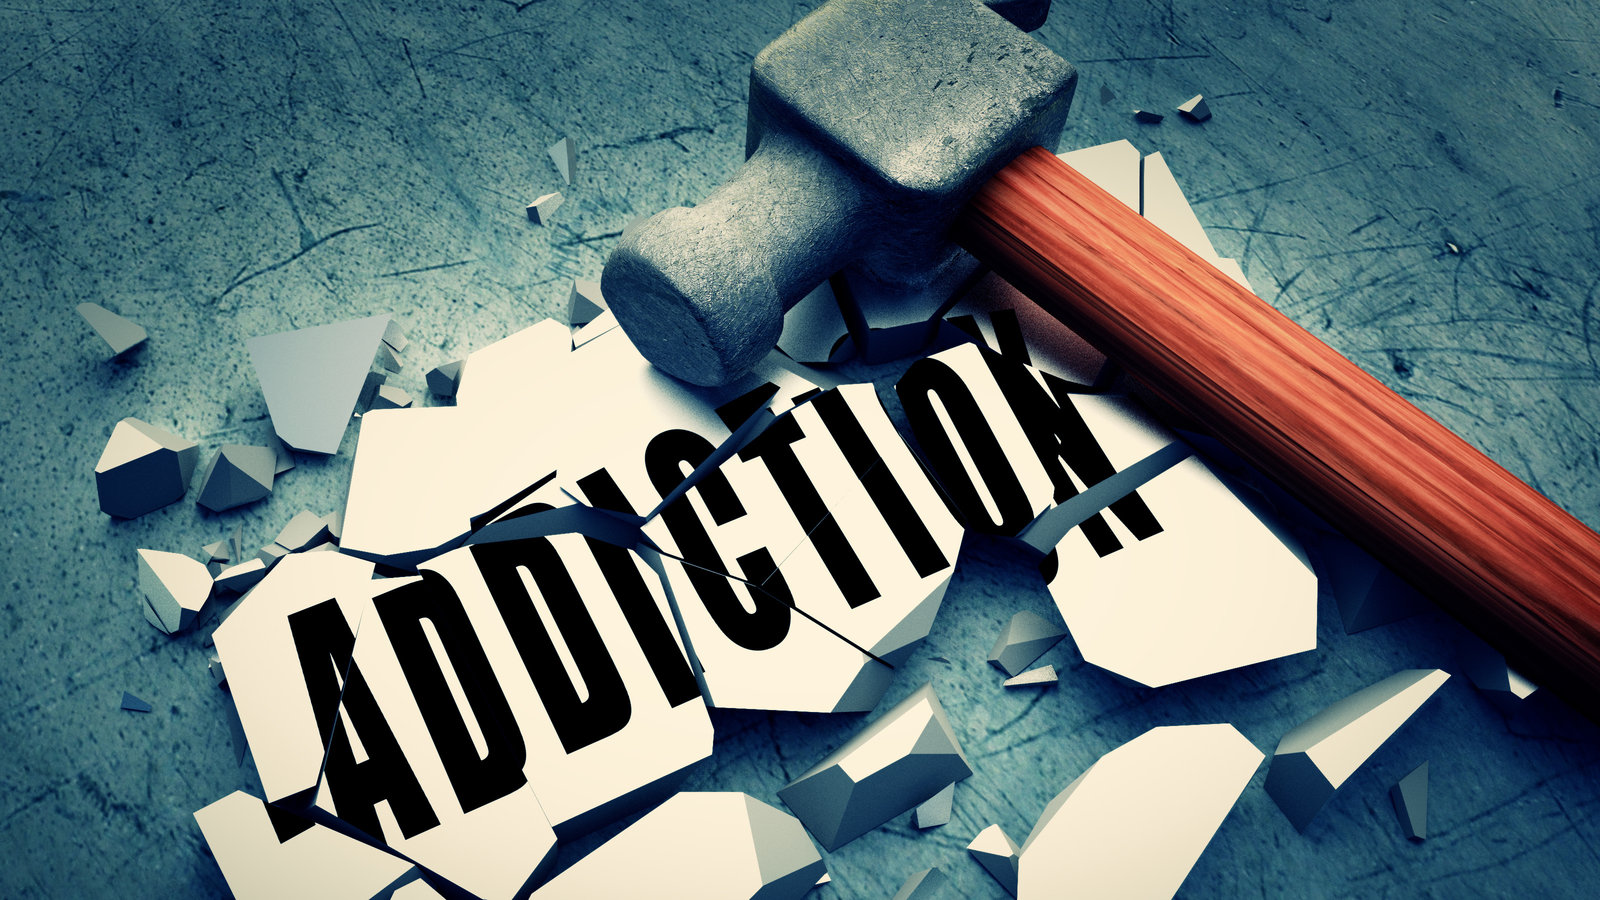 topic about drug addiction